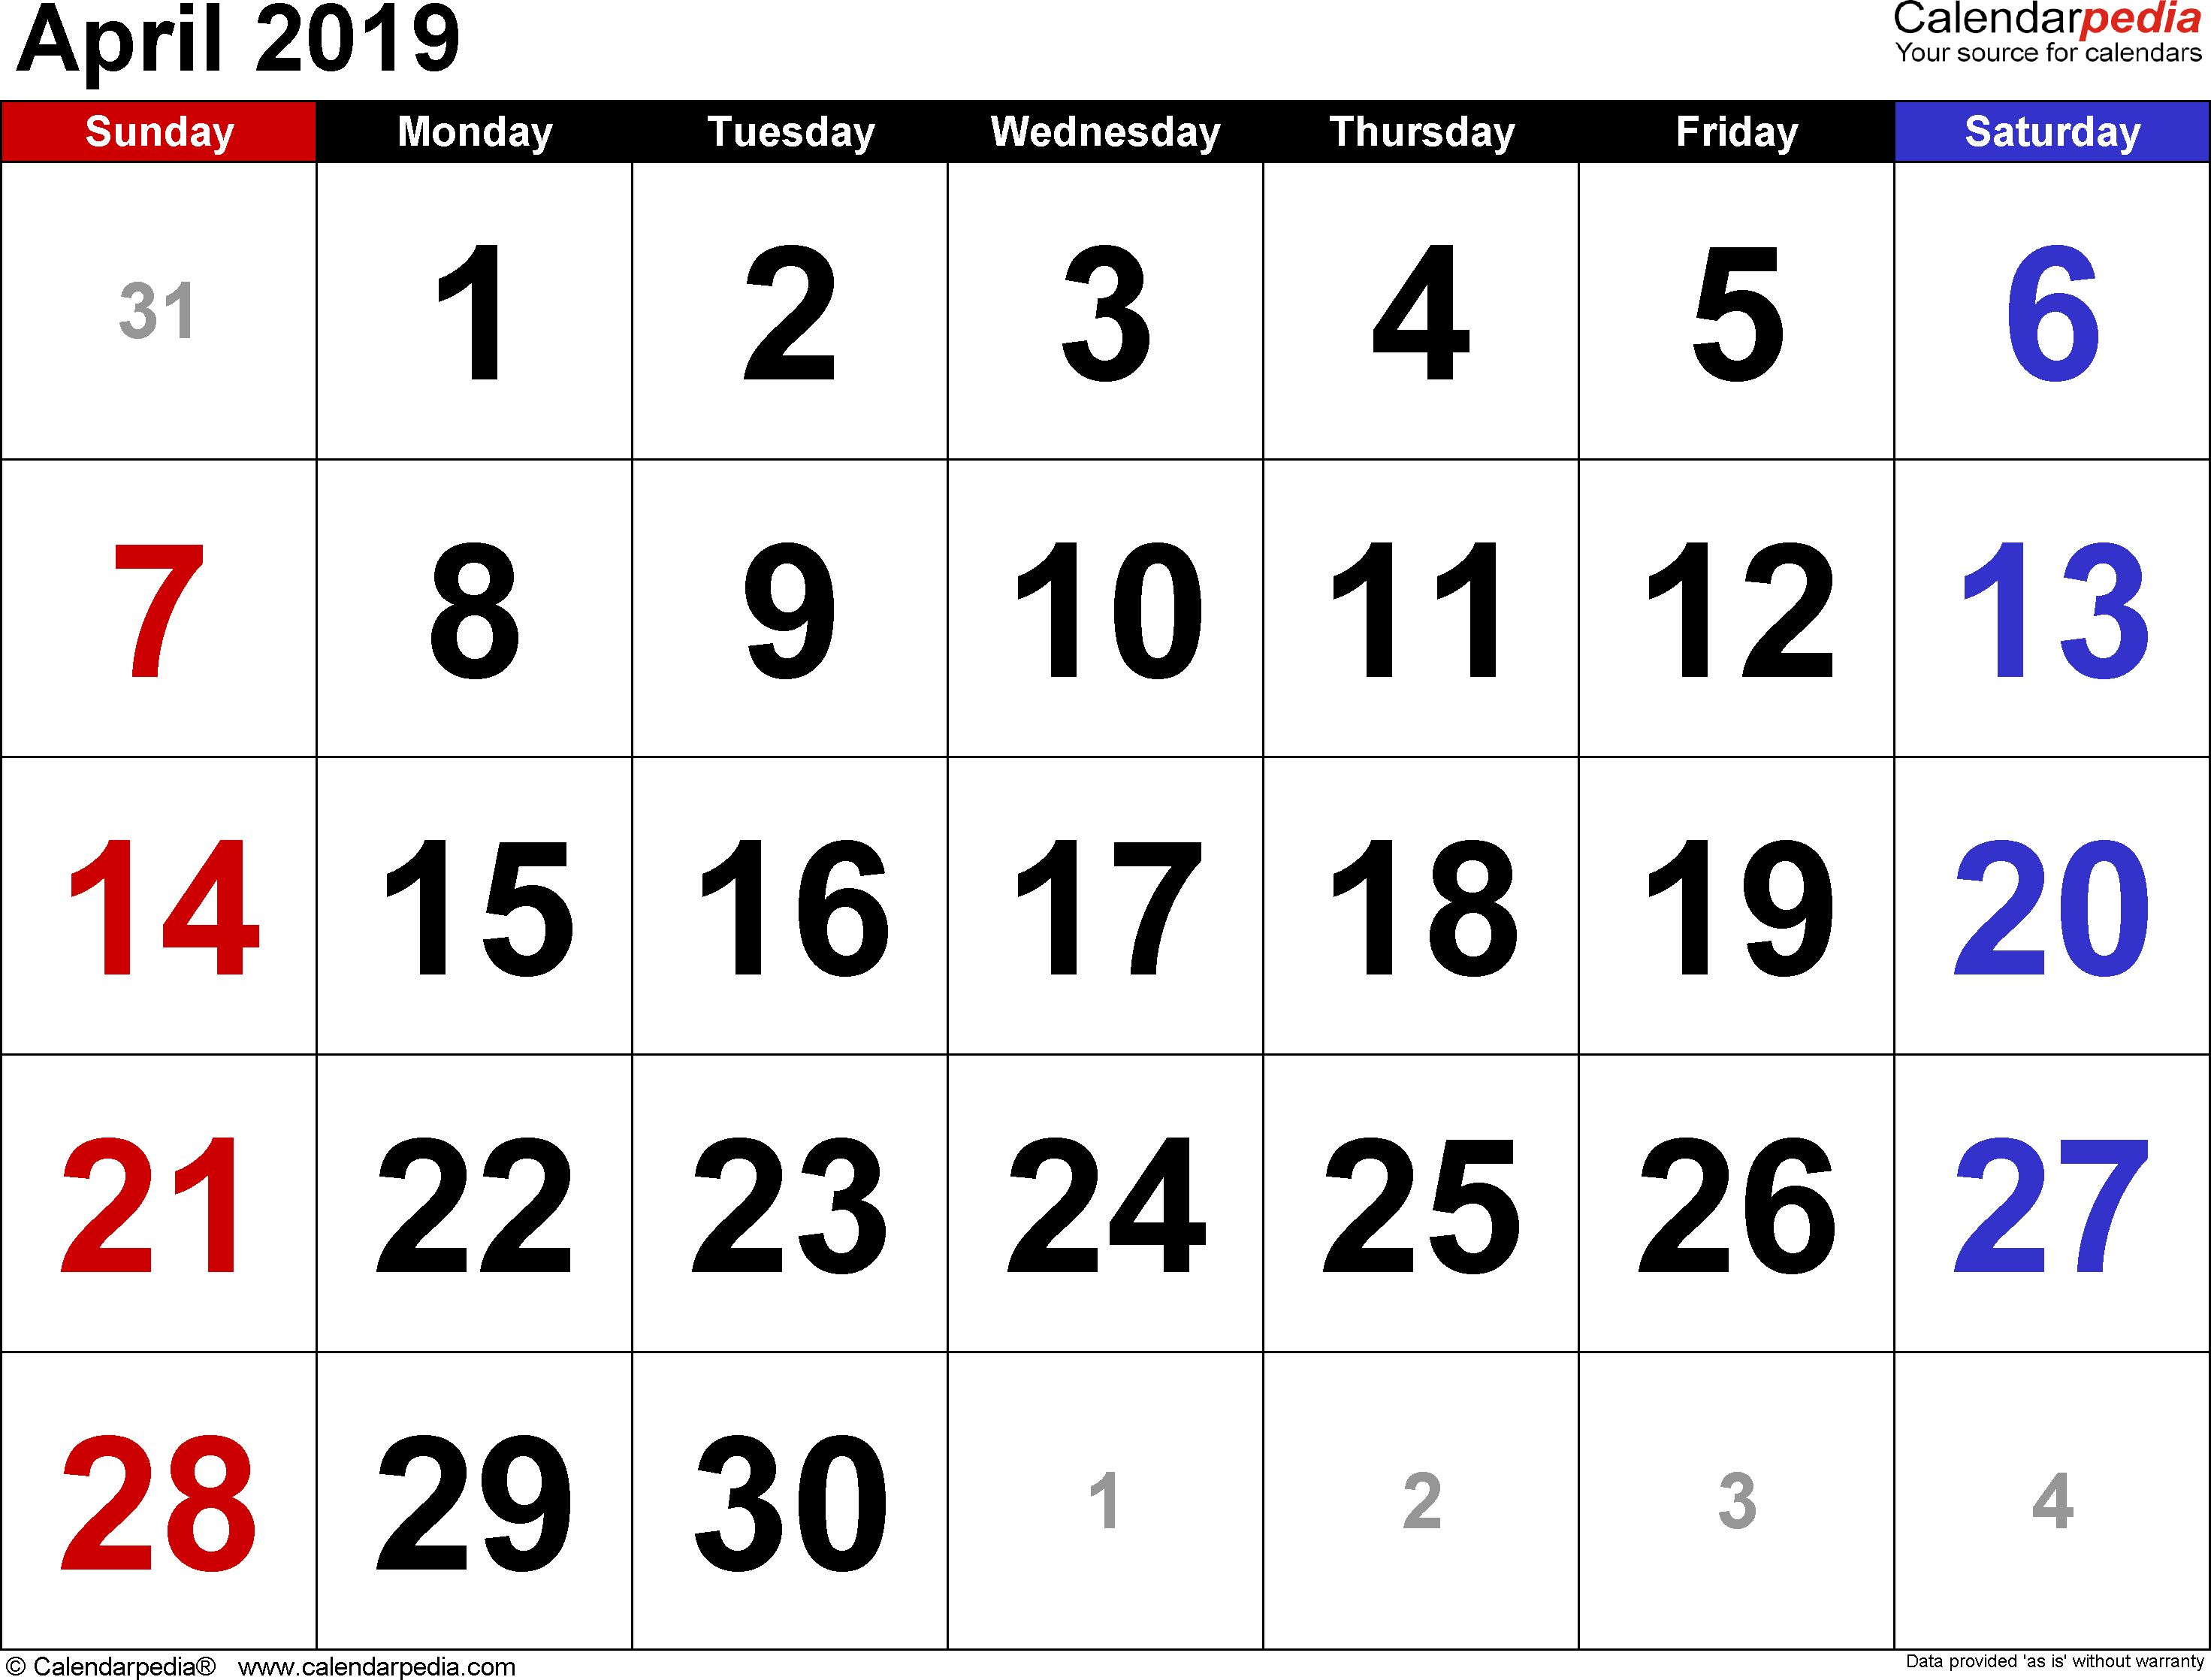 April 2019 calendar, landscape orientation, large numerals, available as printable templates for Word, Excel and PDF